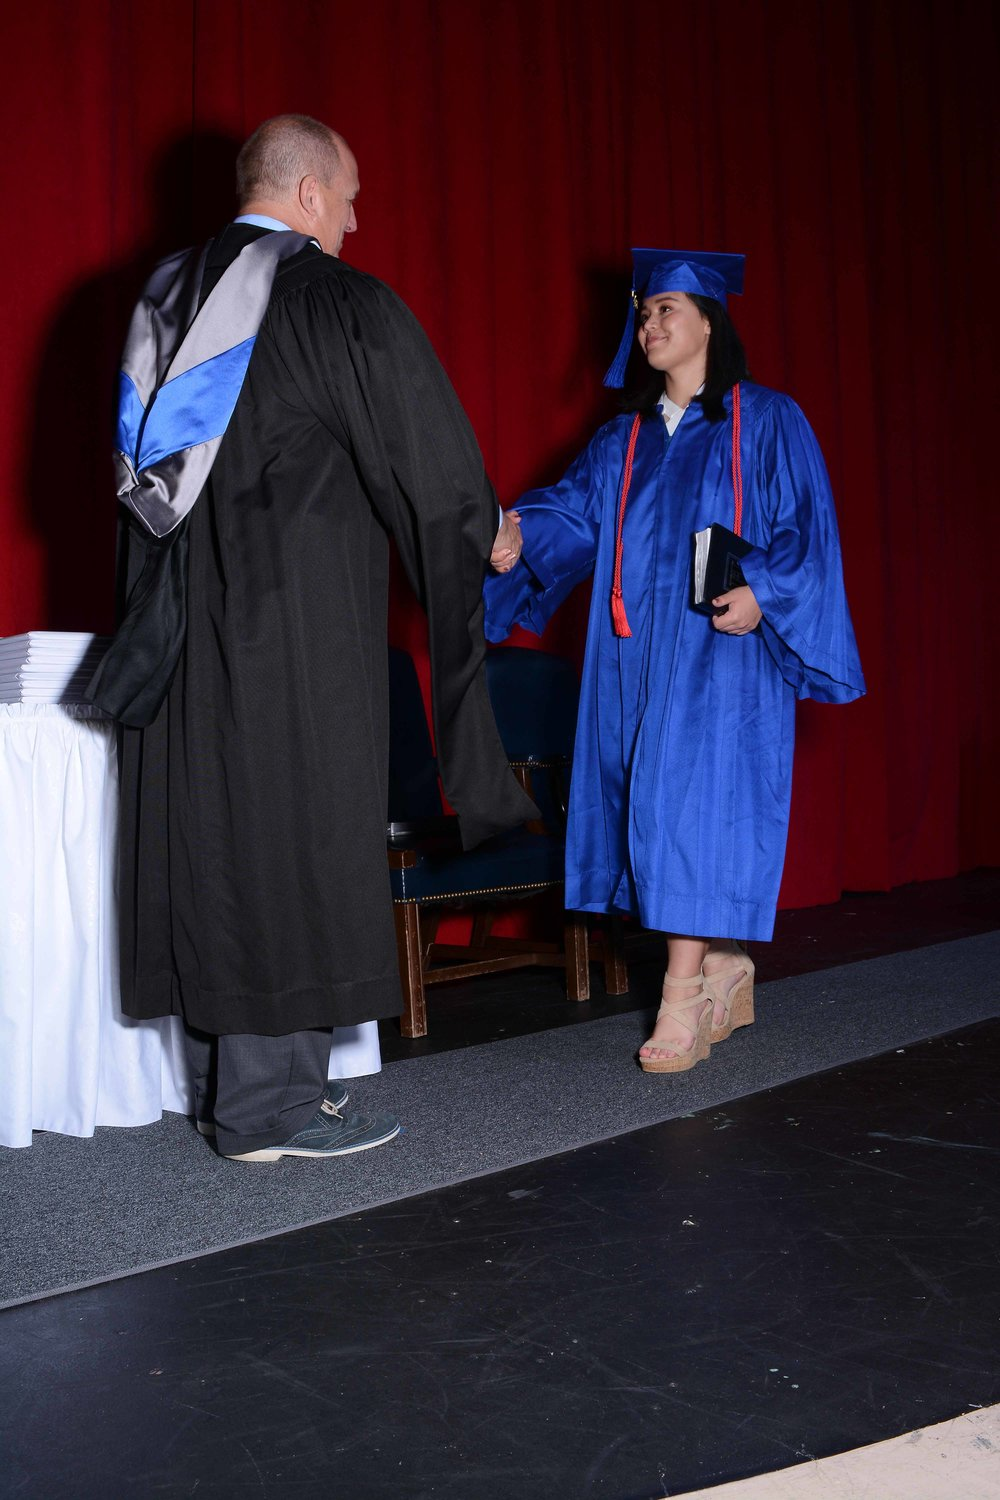 May14 Commencement59.jpg